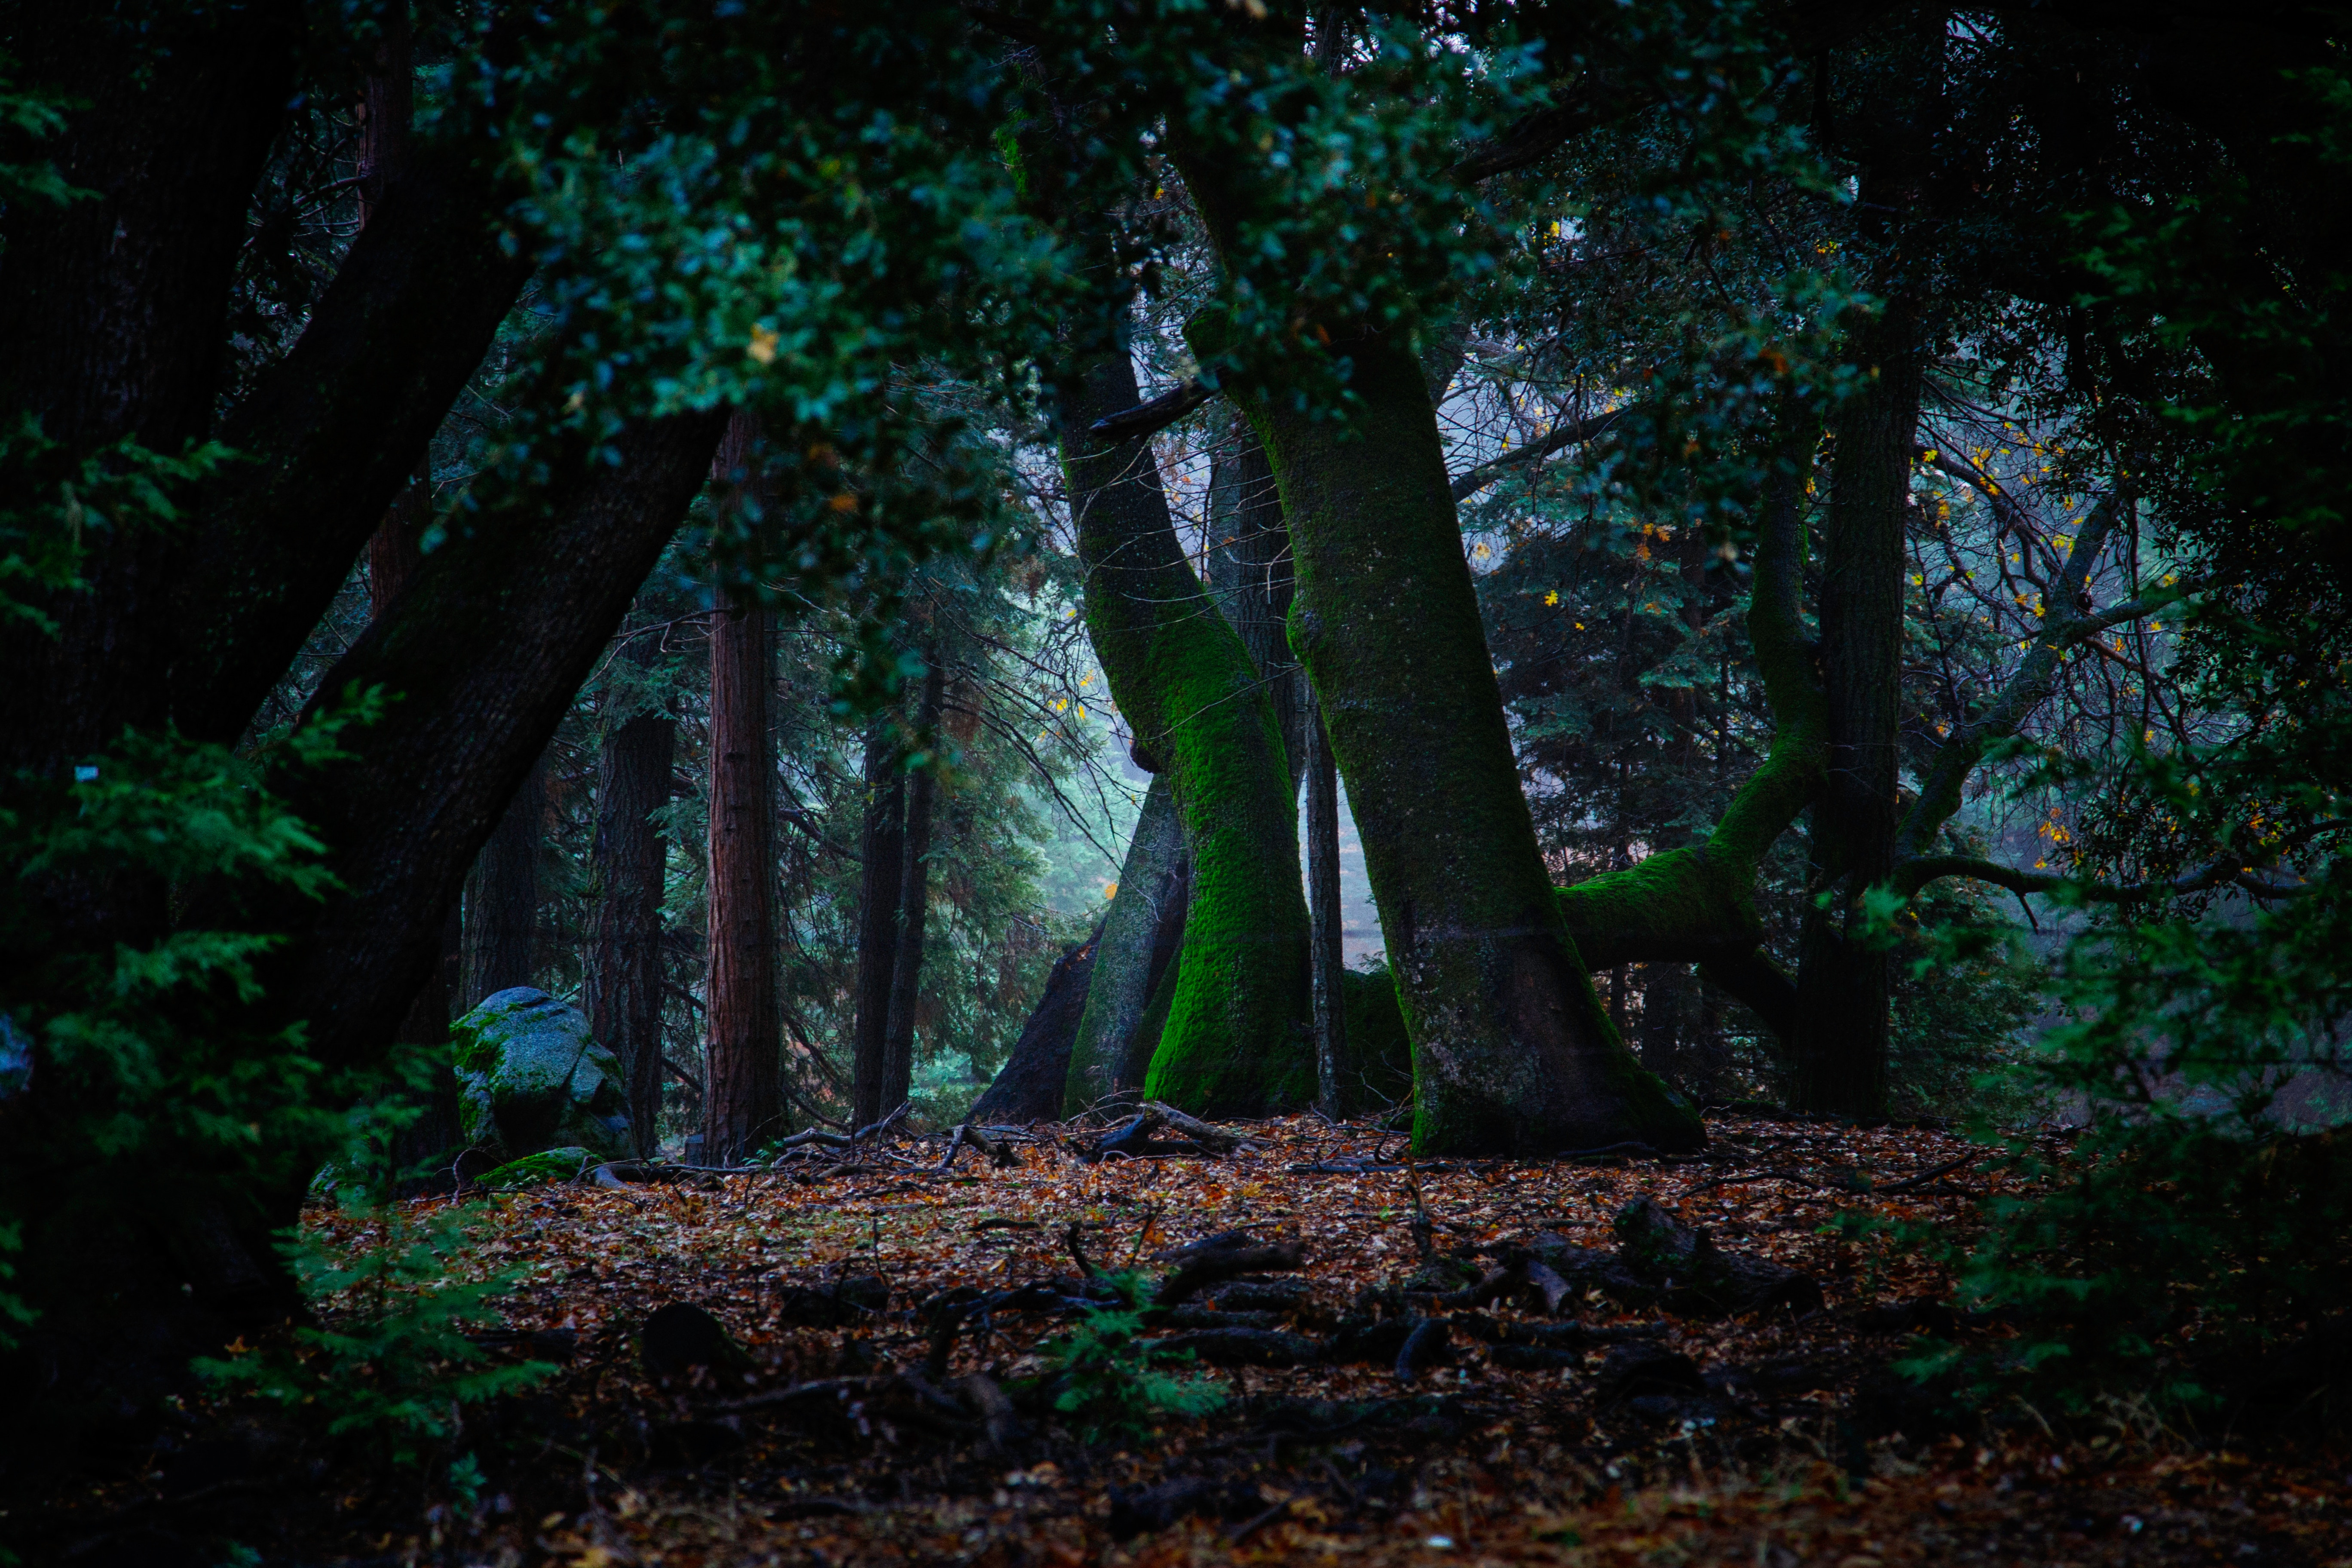 138432 download wallpaper Nature, Trees, Autumn, Moss, Foliage, Forest screensavers and pictures for free